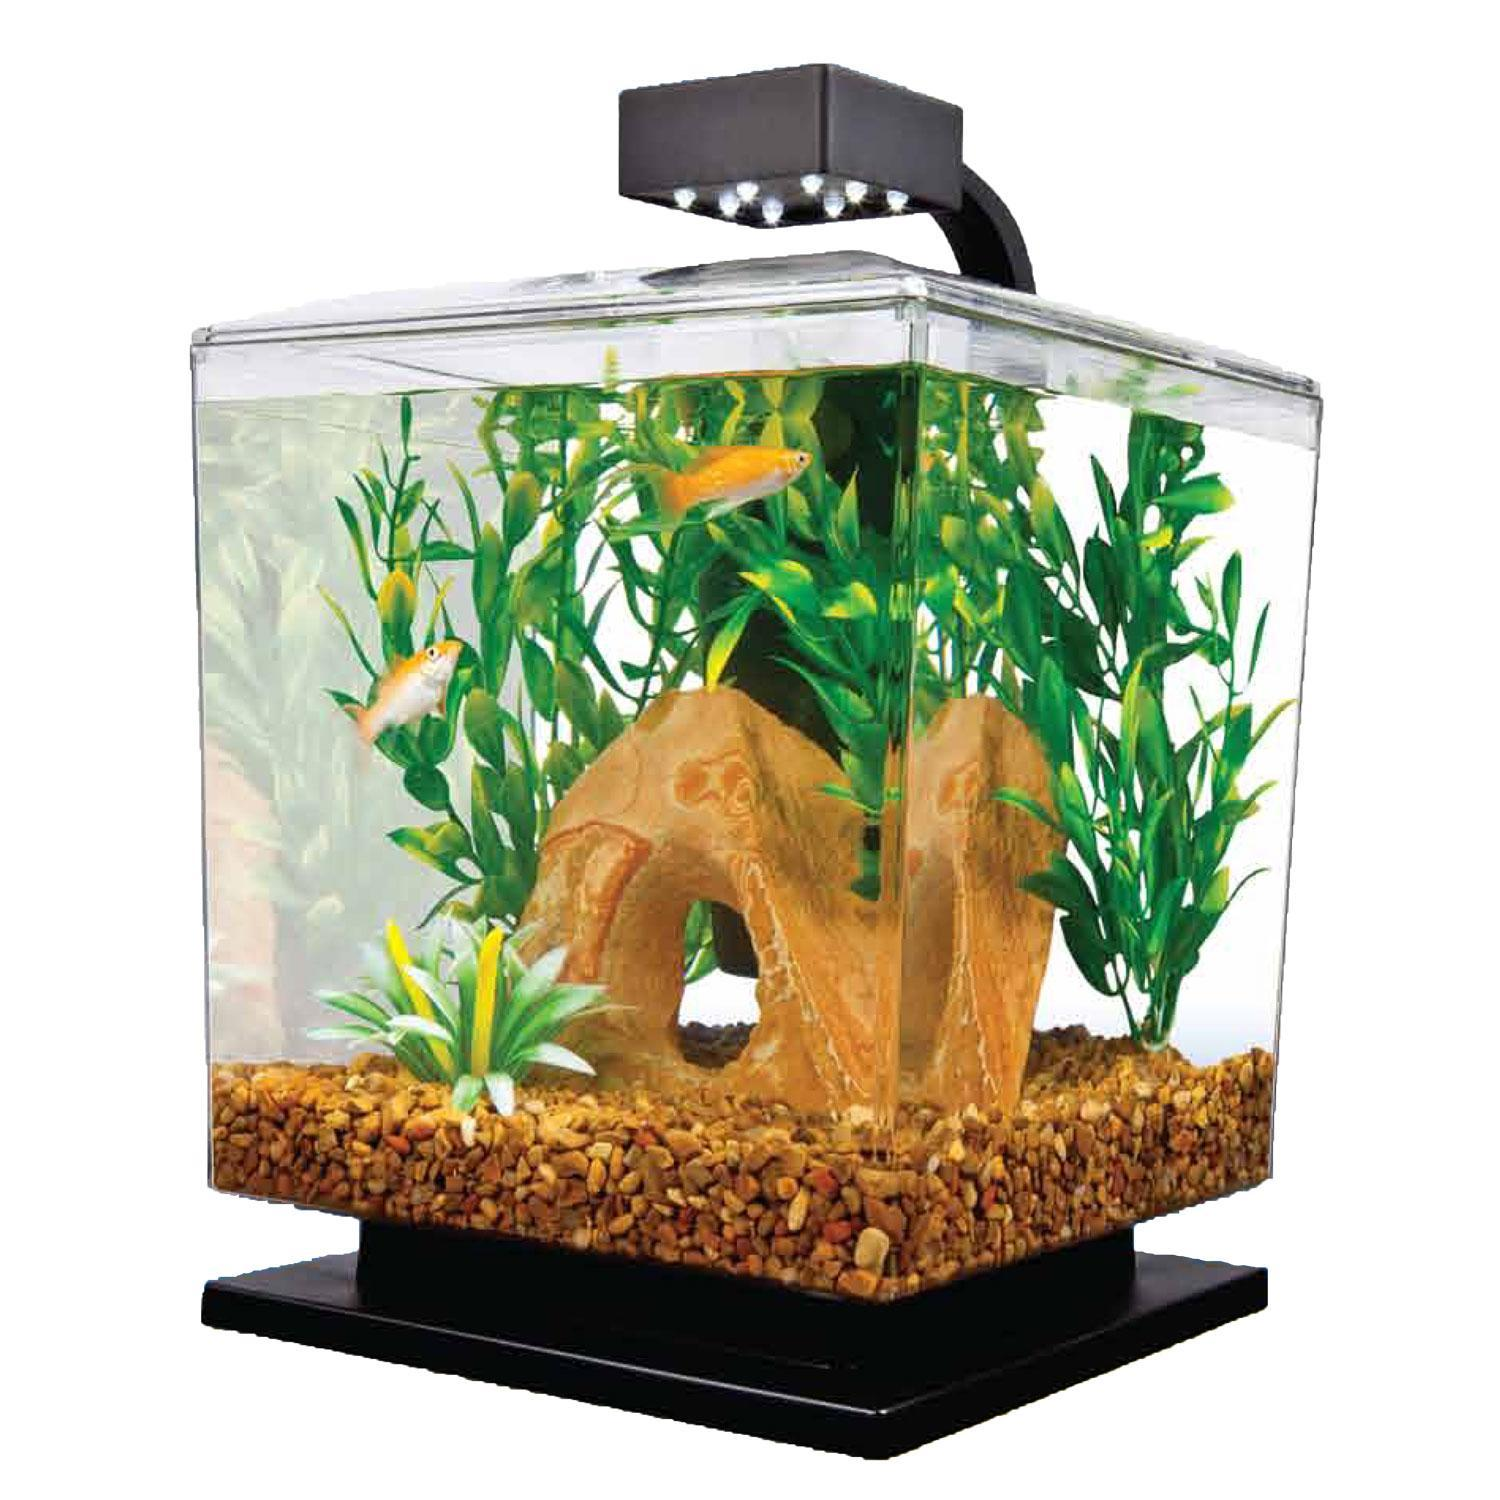 Tetra 1 5 gallon led desktop aquarium kit from for Black light for fish tank